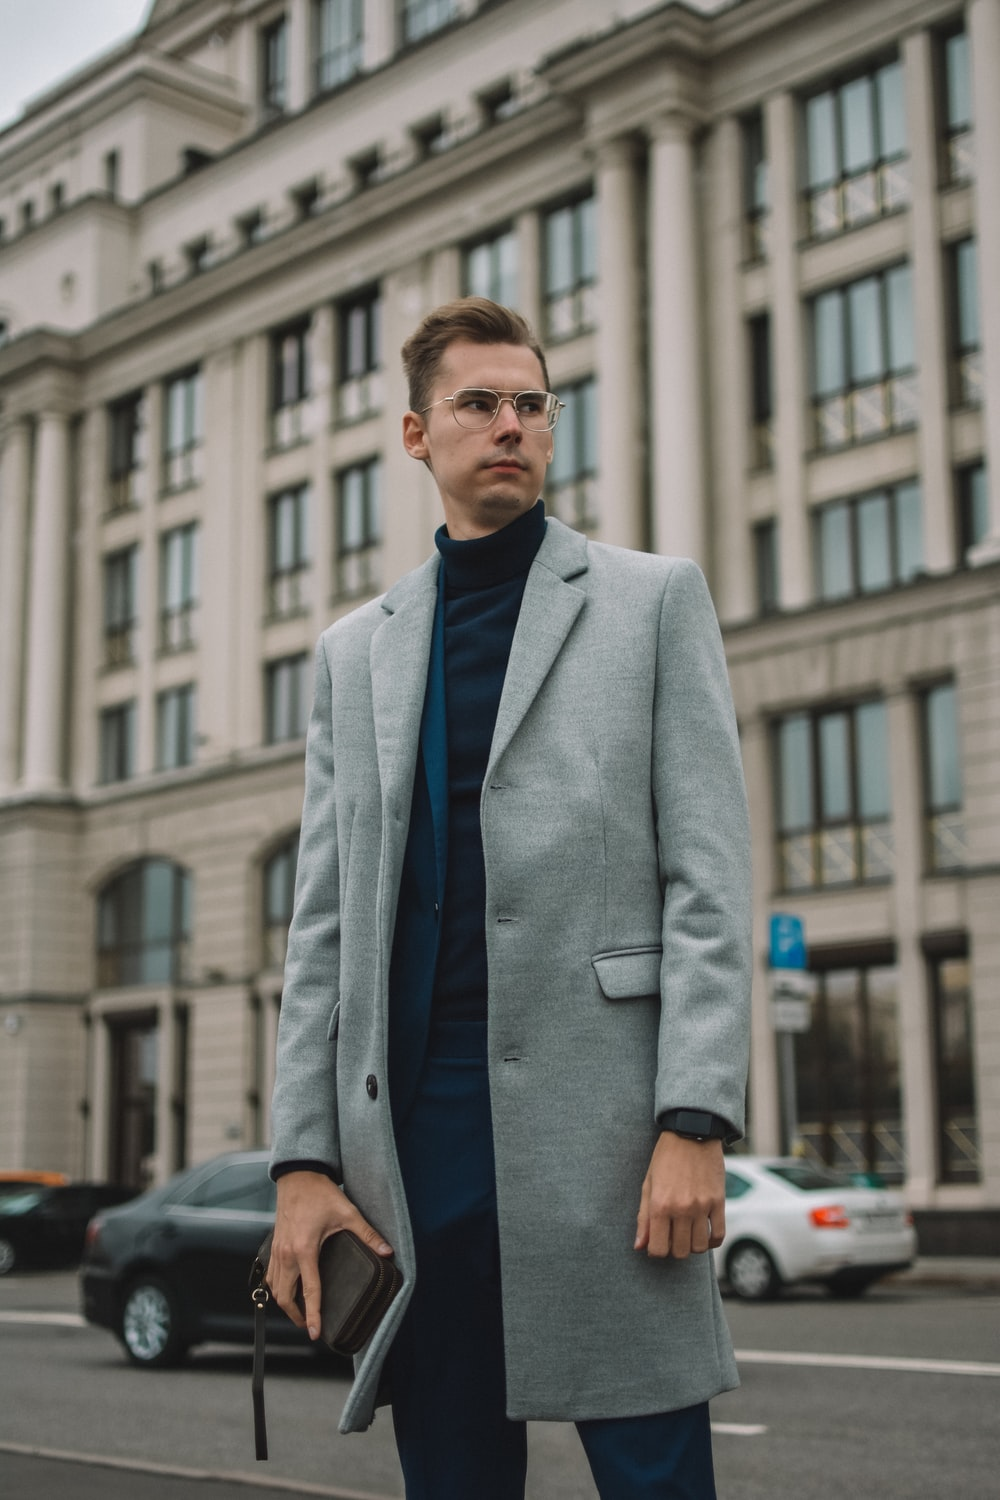 man in gray suit jacket standing near cars during daytime